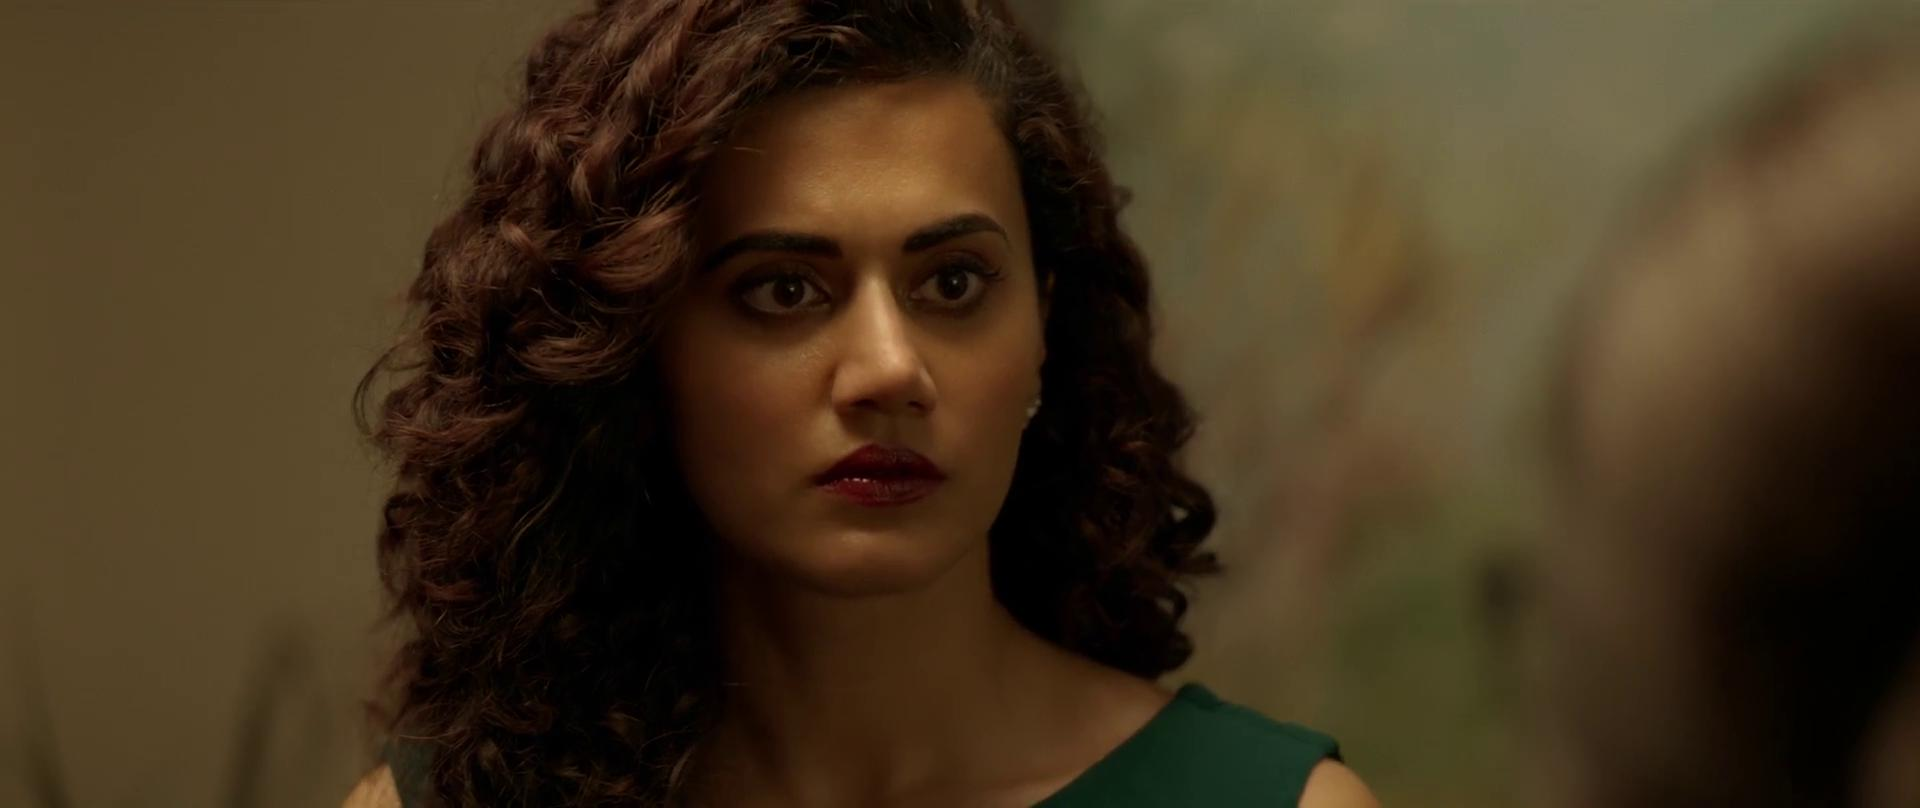 Taapsee Pannu in Badla (2019)